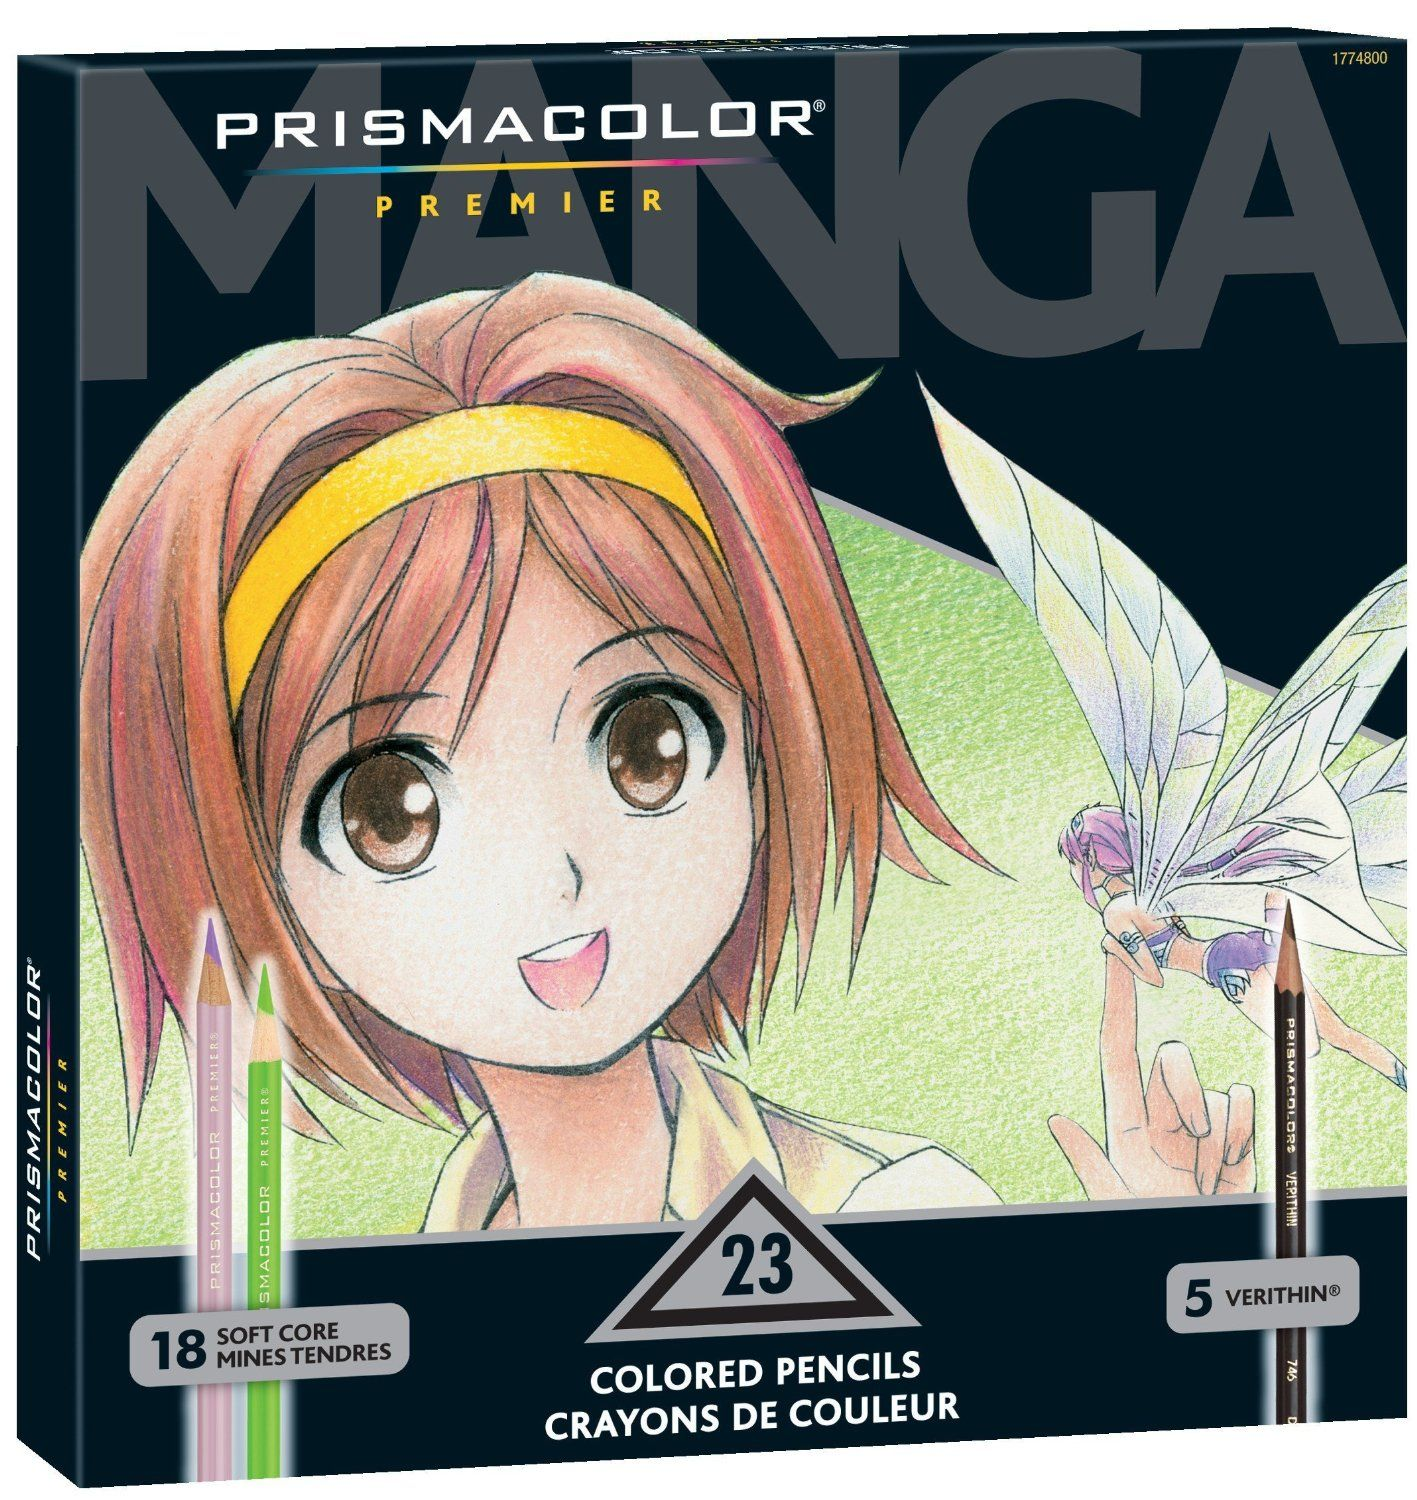 Prismacolor Premier Colored Pencils, Manga Colors, 23 Pack